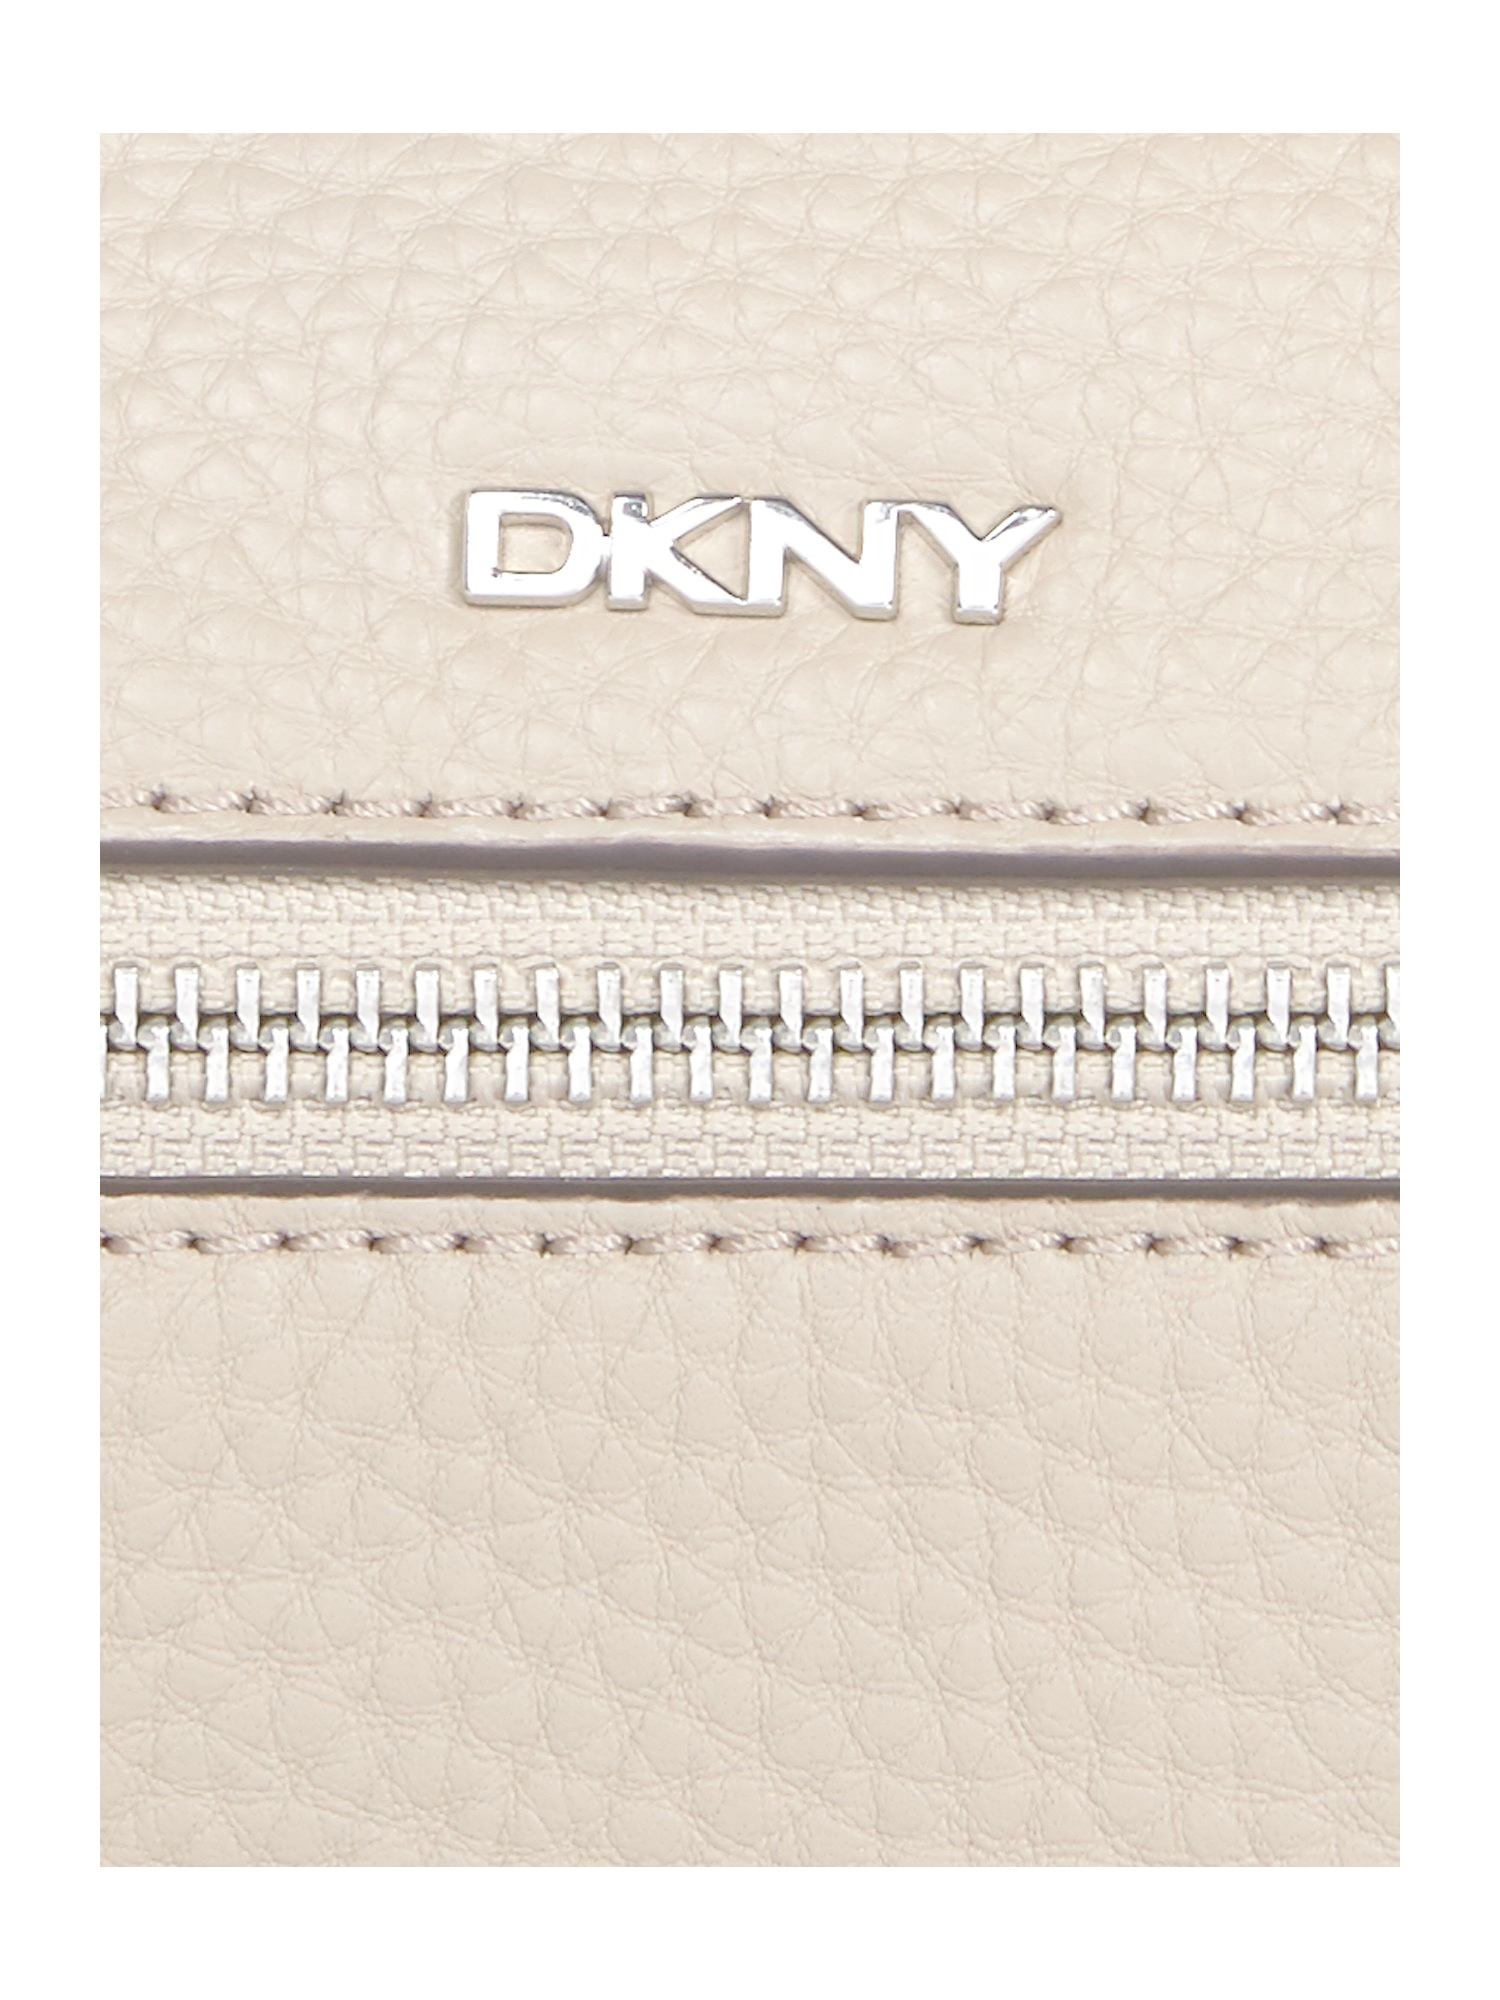 DKNY Leather Tribeca Neutral Crossbody Bag in Natural